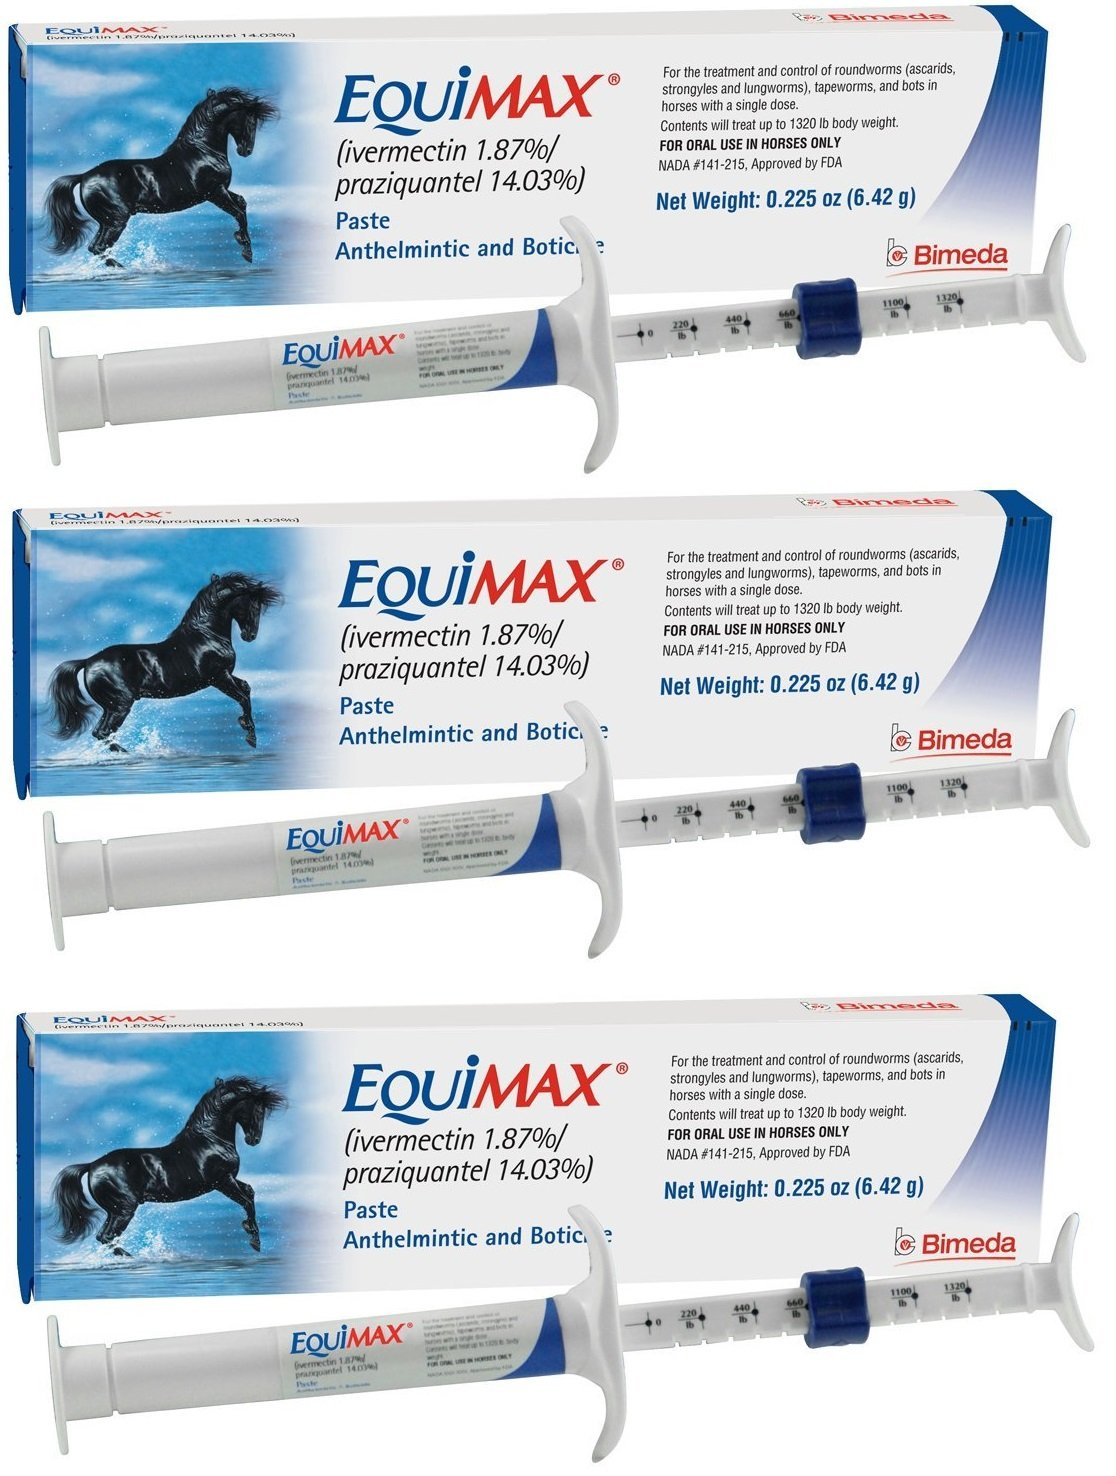 Equimax Horse Wormer Ivermectin 1.87% and Praziquantel 14.03% Paste Tube Bimeda